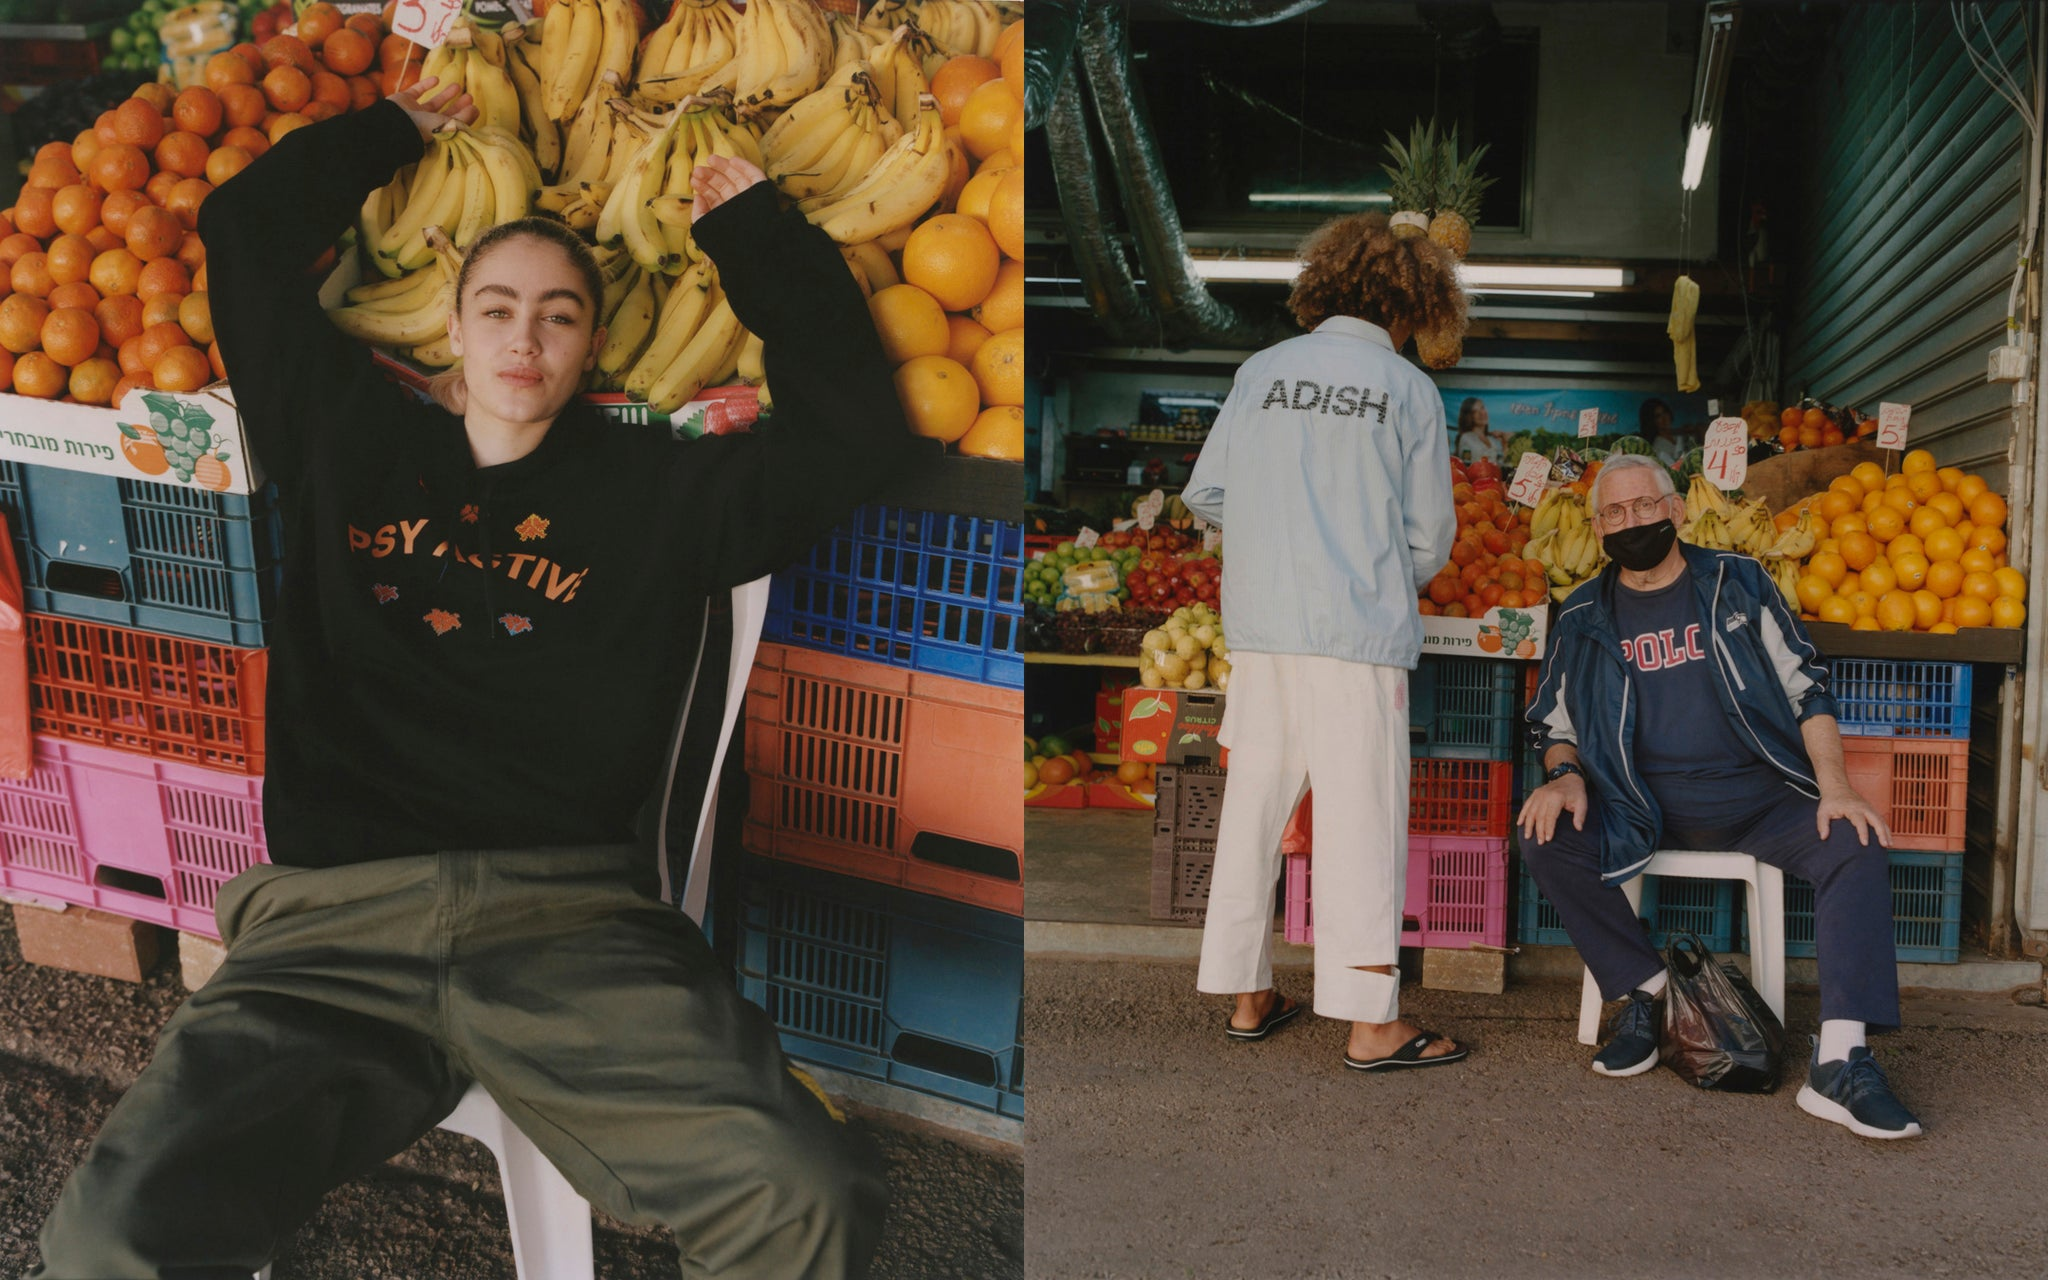 P.A.M. X ADISH in stores and online now.